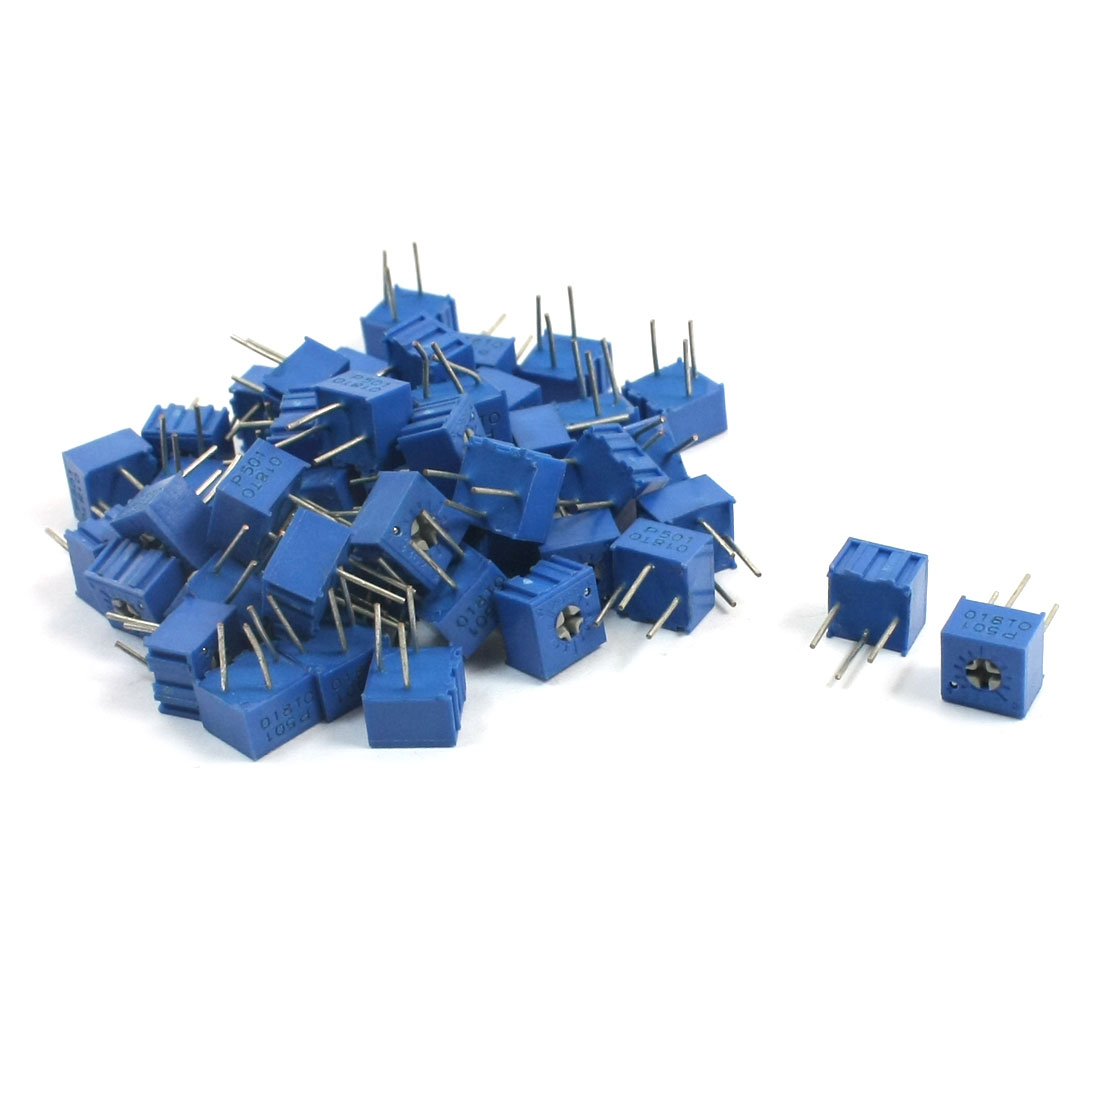 50 Pcs 3362P-1-501 500 Ohm 500V Trimmer Pot Cermet Variable Resistor Potentiometers